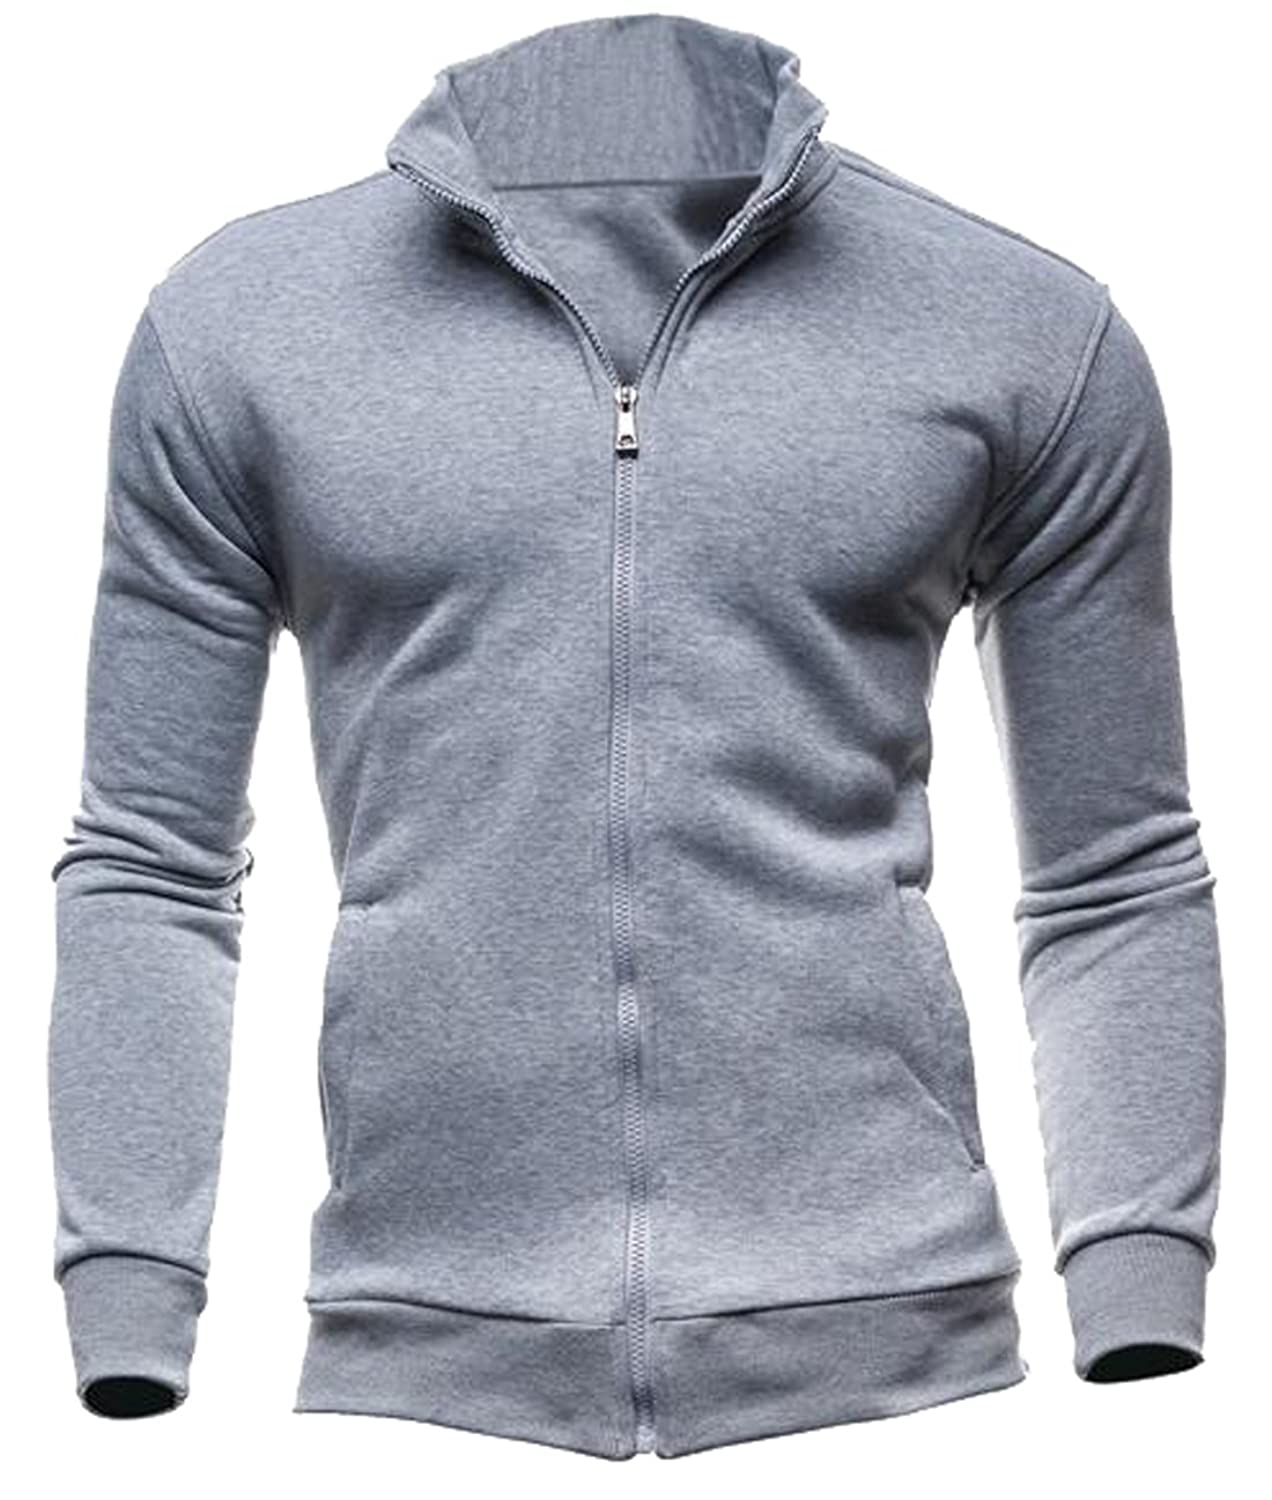 Yayu Mens Hoodies Thick Loose Fit Faux Fur Lined Printing Athletic Pullover Sweatshirts